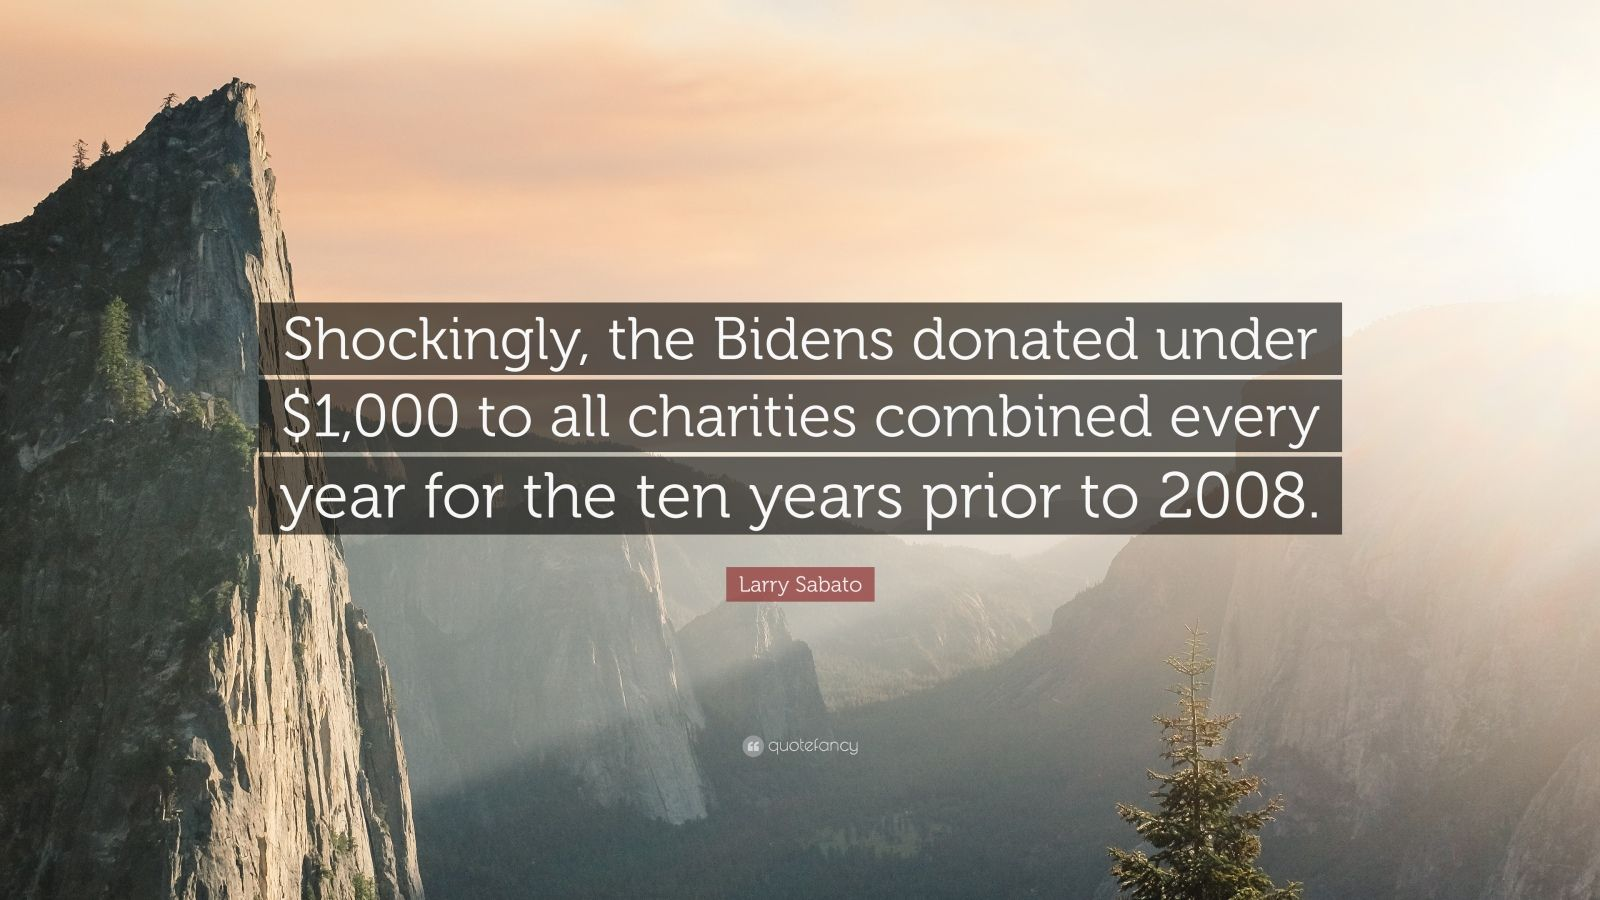 """Larry Sabato Quote: """"Shockingly, the Bidens donated under $1,000 to all charities combined every year for the ten years prior to 2008."""""""